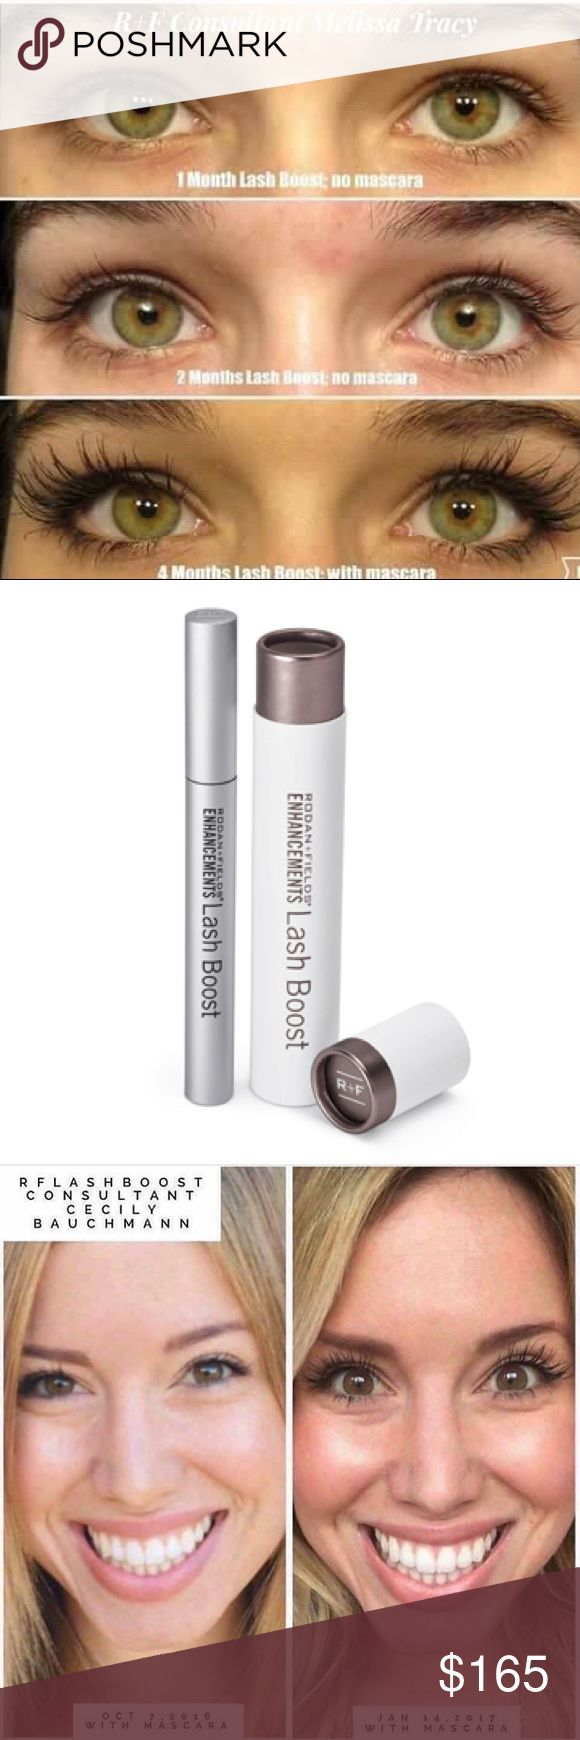 Rodan and Fields Lash Boost You have to try this Award winning Rodan and Fields lash boost product!!!. This tube lasts for 4 months and you start to see results in 8 weeks! Forget about having to deal with eyelash extensions! This product is much more cost effective and looks more natural! rodan and fields Other